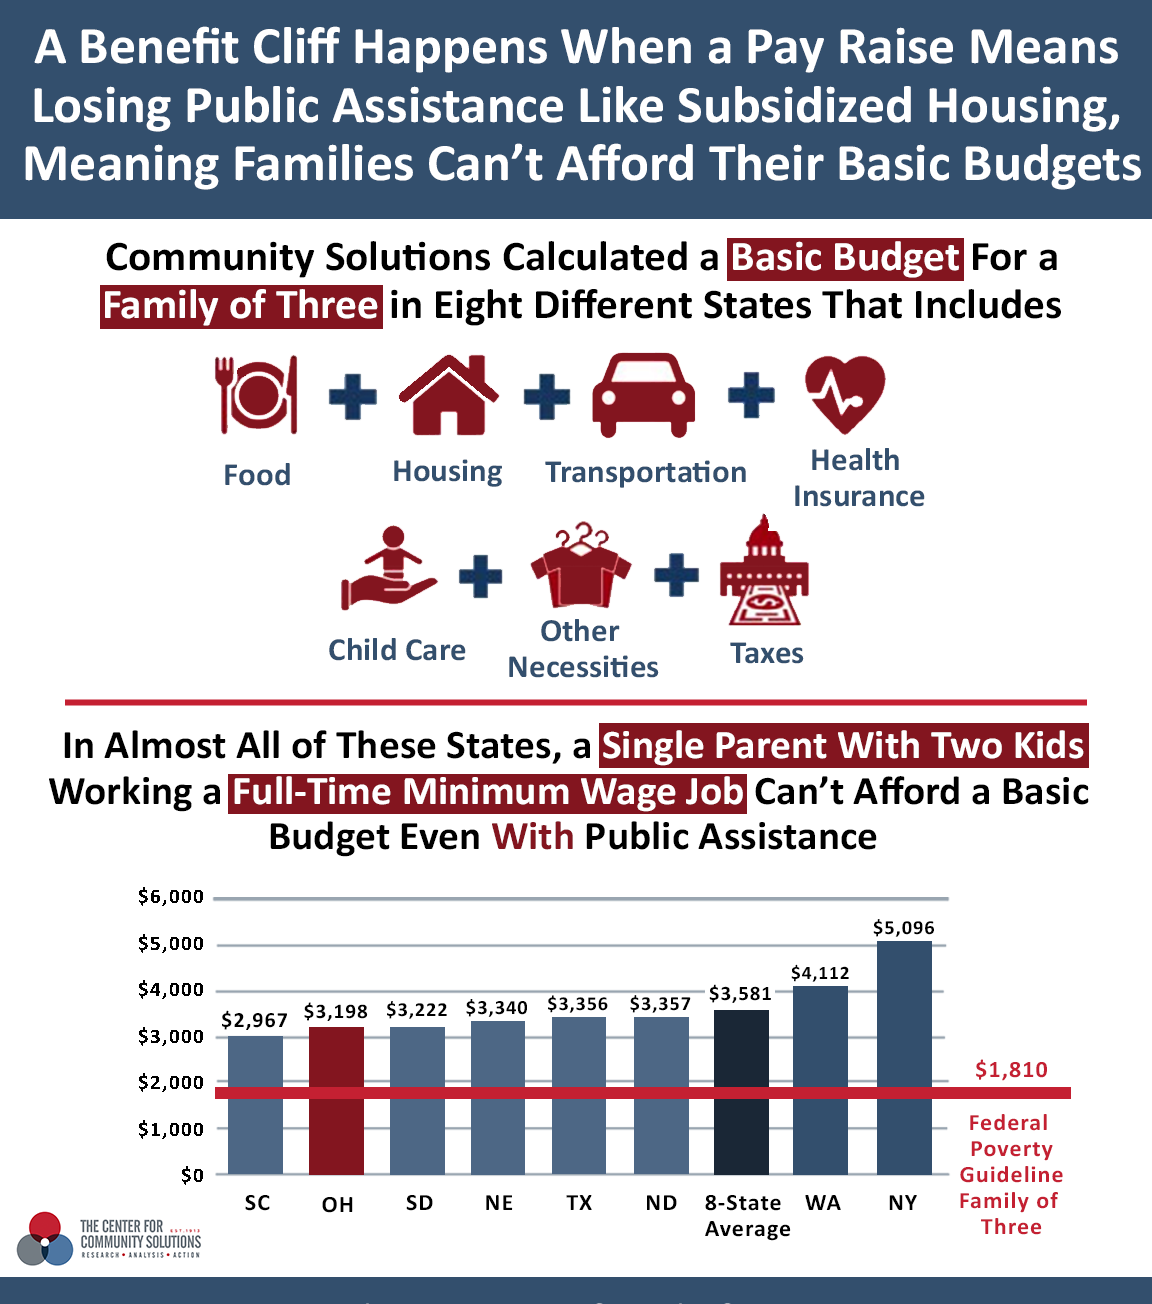 Study shows that a single parent with two kids working a full-time minimum wage job cannot afford a basic budget with public assistance.